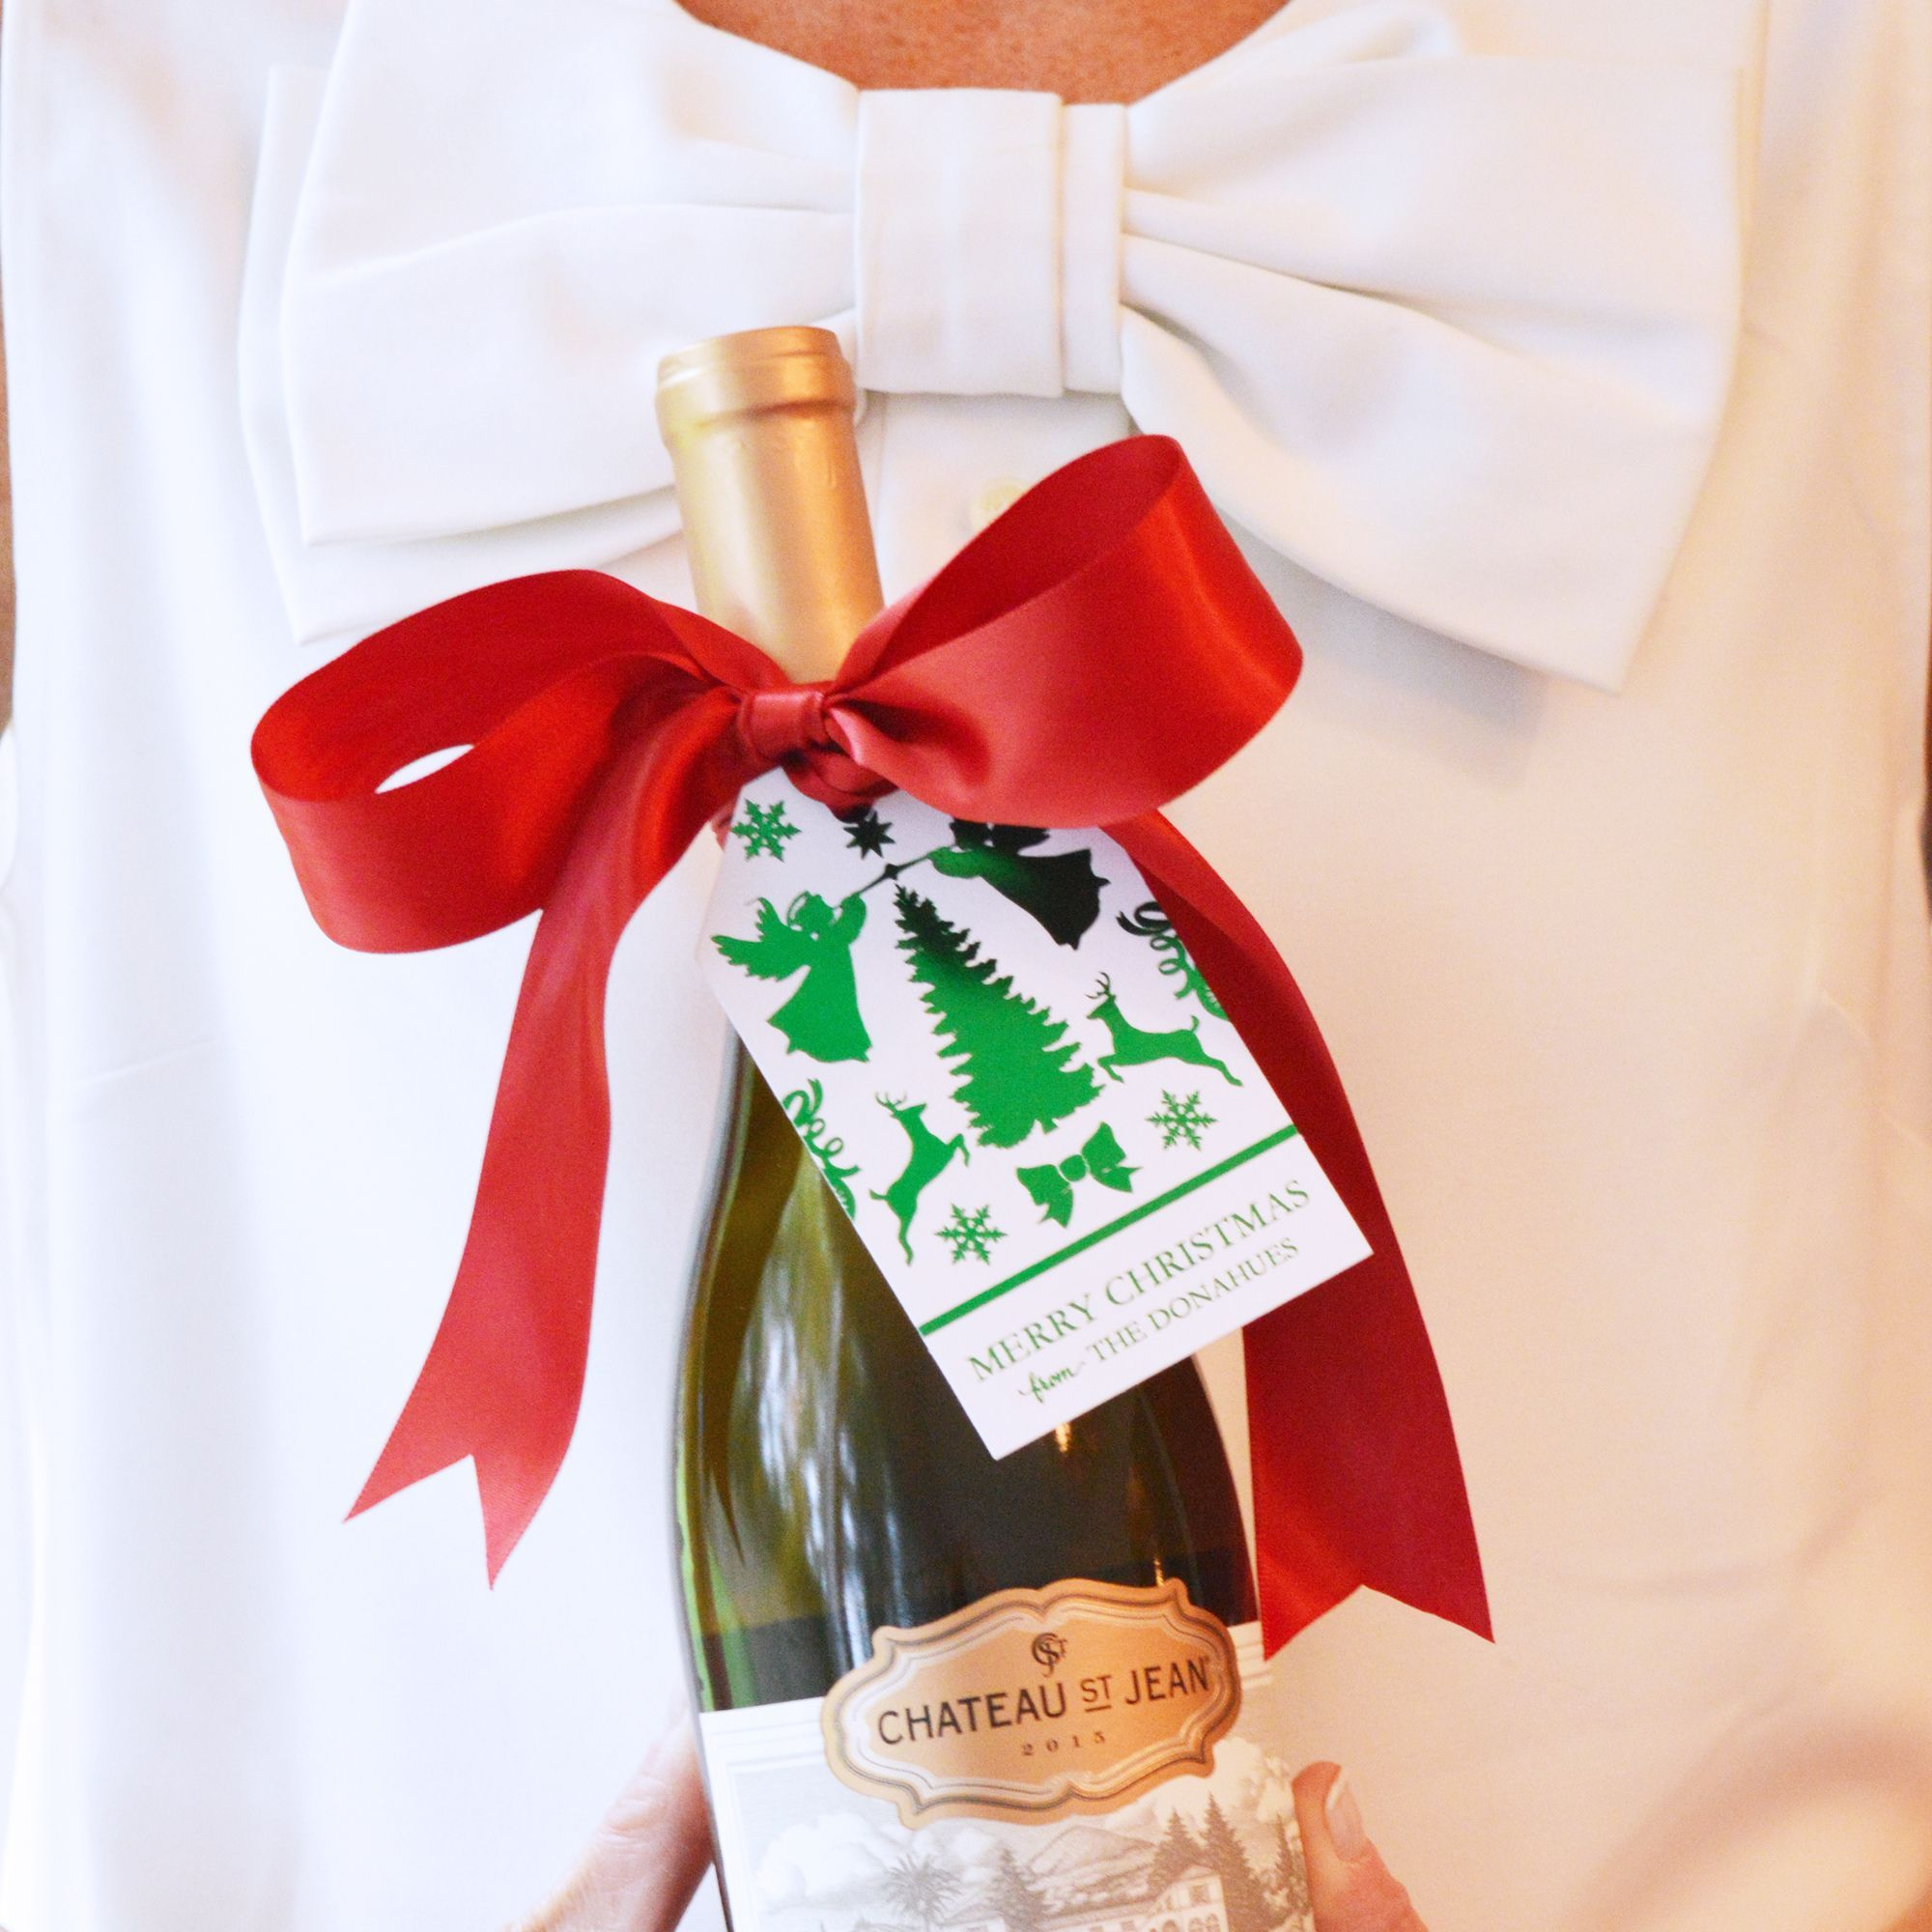 A Bottle Of Wine Never Looked So Good Dress Up Your Holiday Hostess Gifts With A Foil Stamped Gift Tag Bow Holiday Hostess Gifts Gift Tags Hostess Gifts